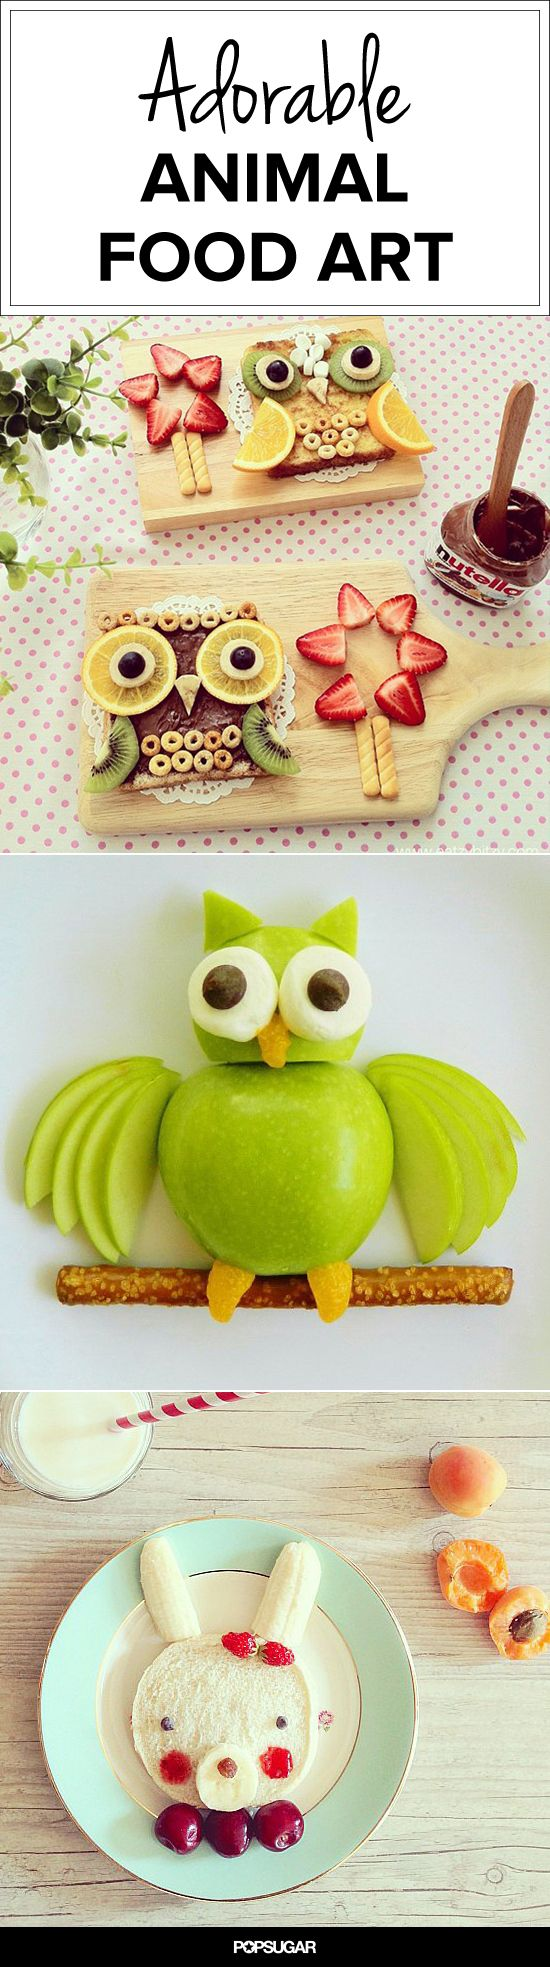 The Most Adorable Animal Food Art Ideas!